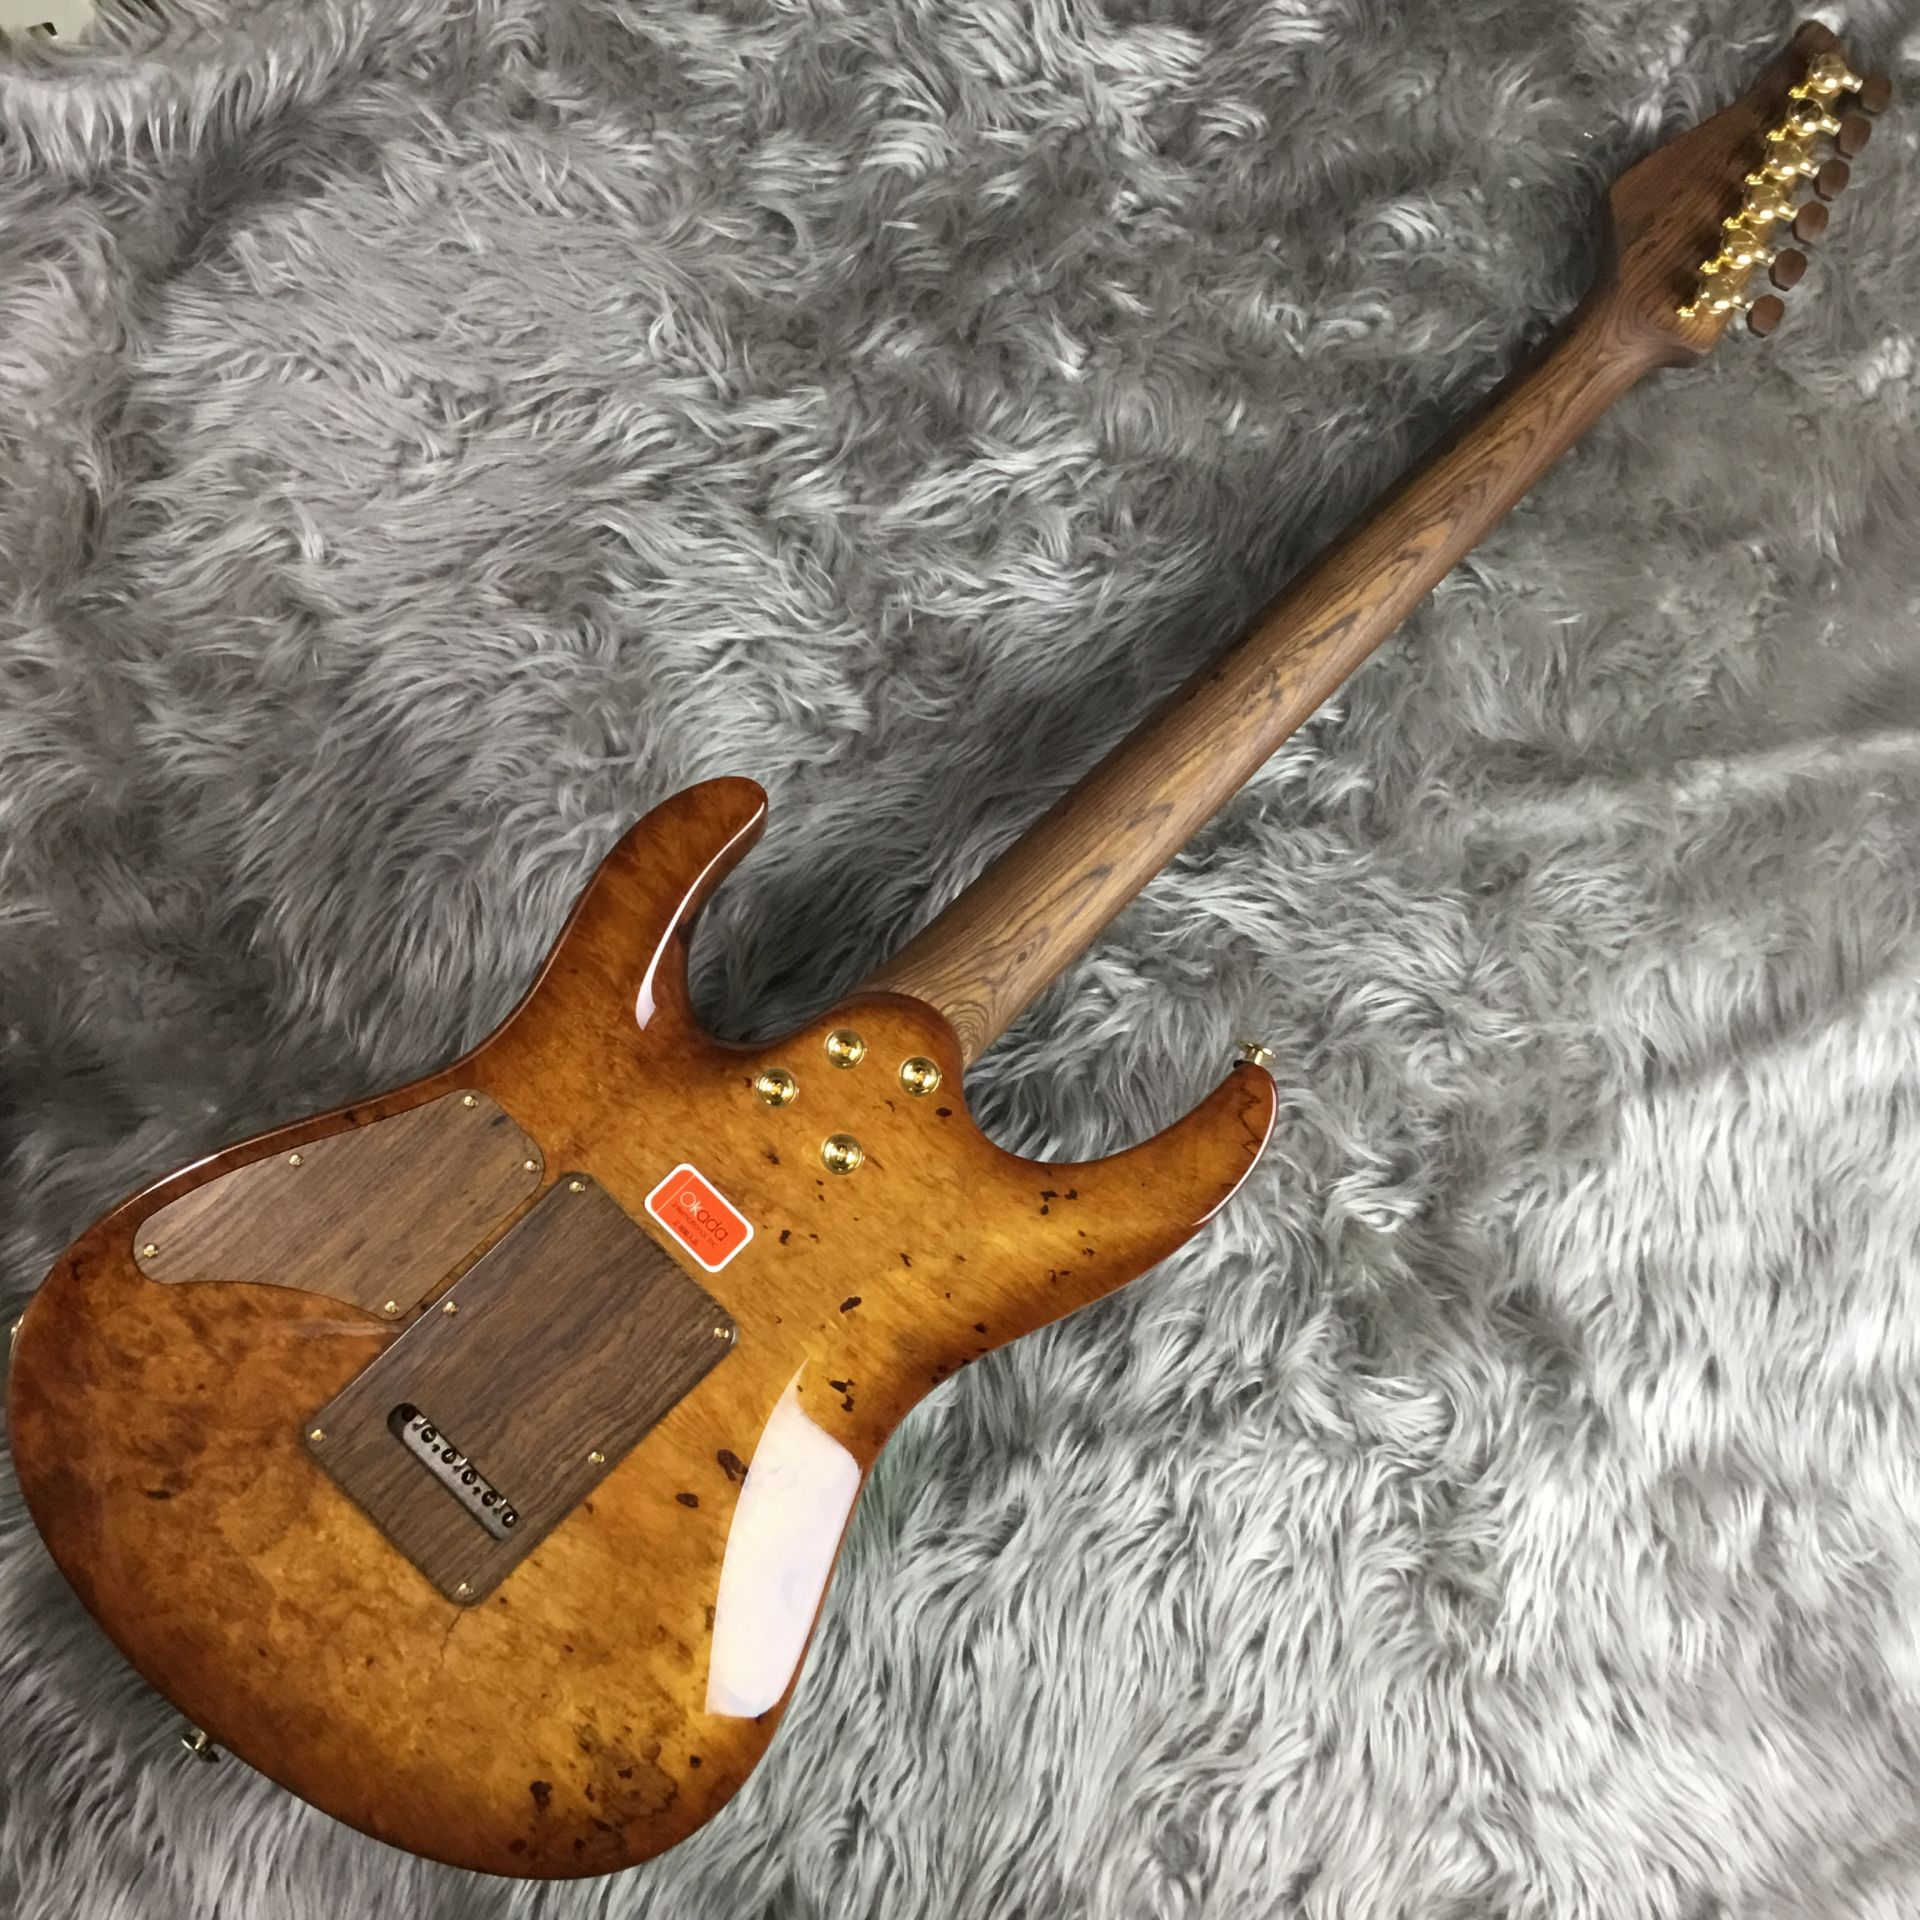 The 2015 Collection Burl Maple Modern Carve Topの全体画像(縦)